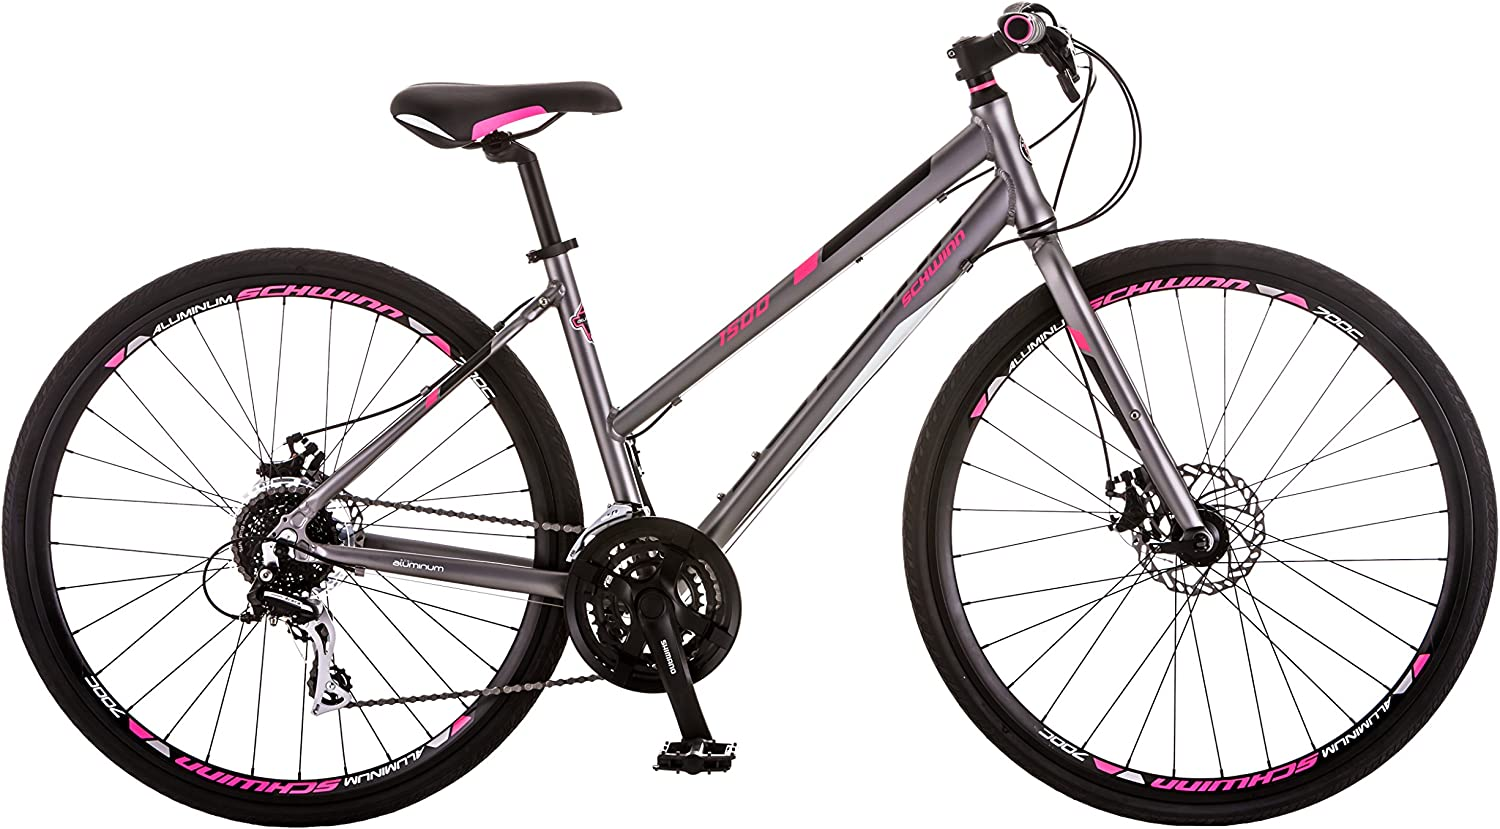 Schwinn Phocus 1500 Flat Bar Sport Fitness Hybrid Bikes, 17-Inch Small Step-Through or 19-Inch Large Step-Over Aluminum Frame with Shimano 24-Speed Drivetrain, Disc Brakes, and 700c Wheels, Matte Grey